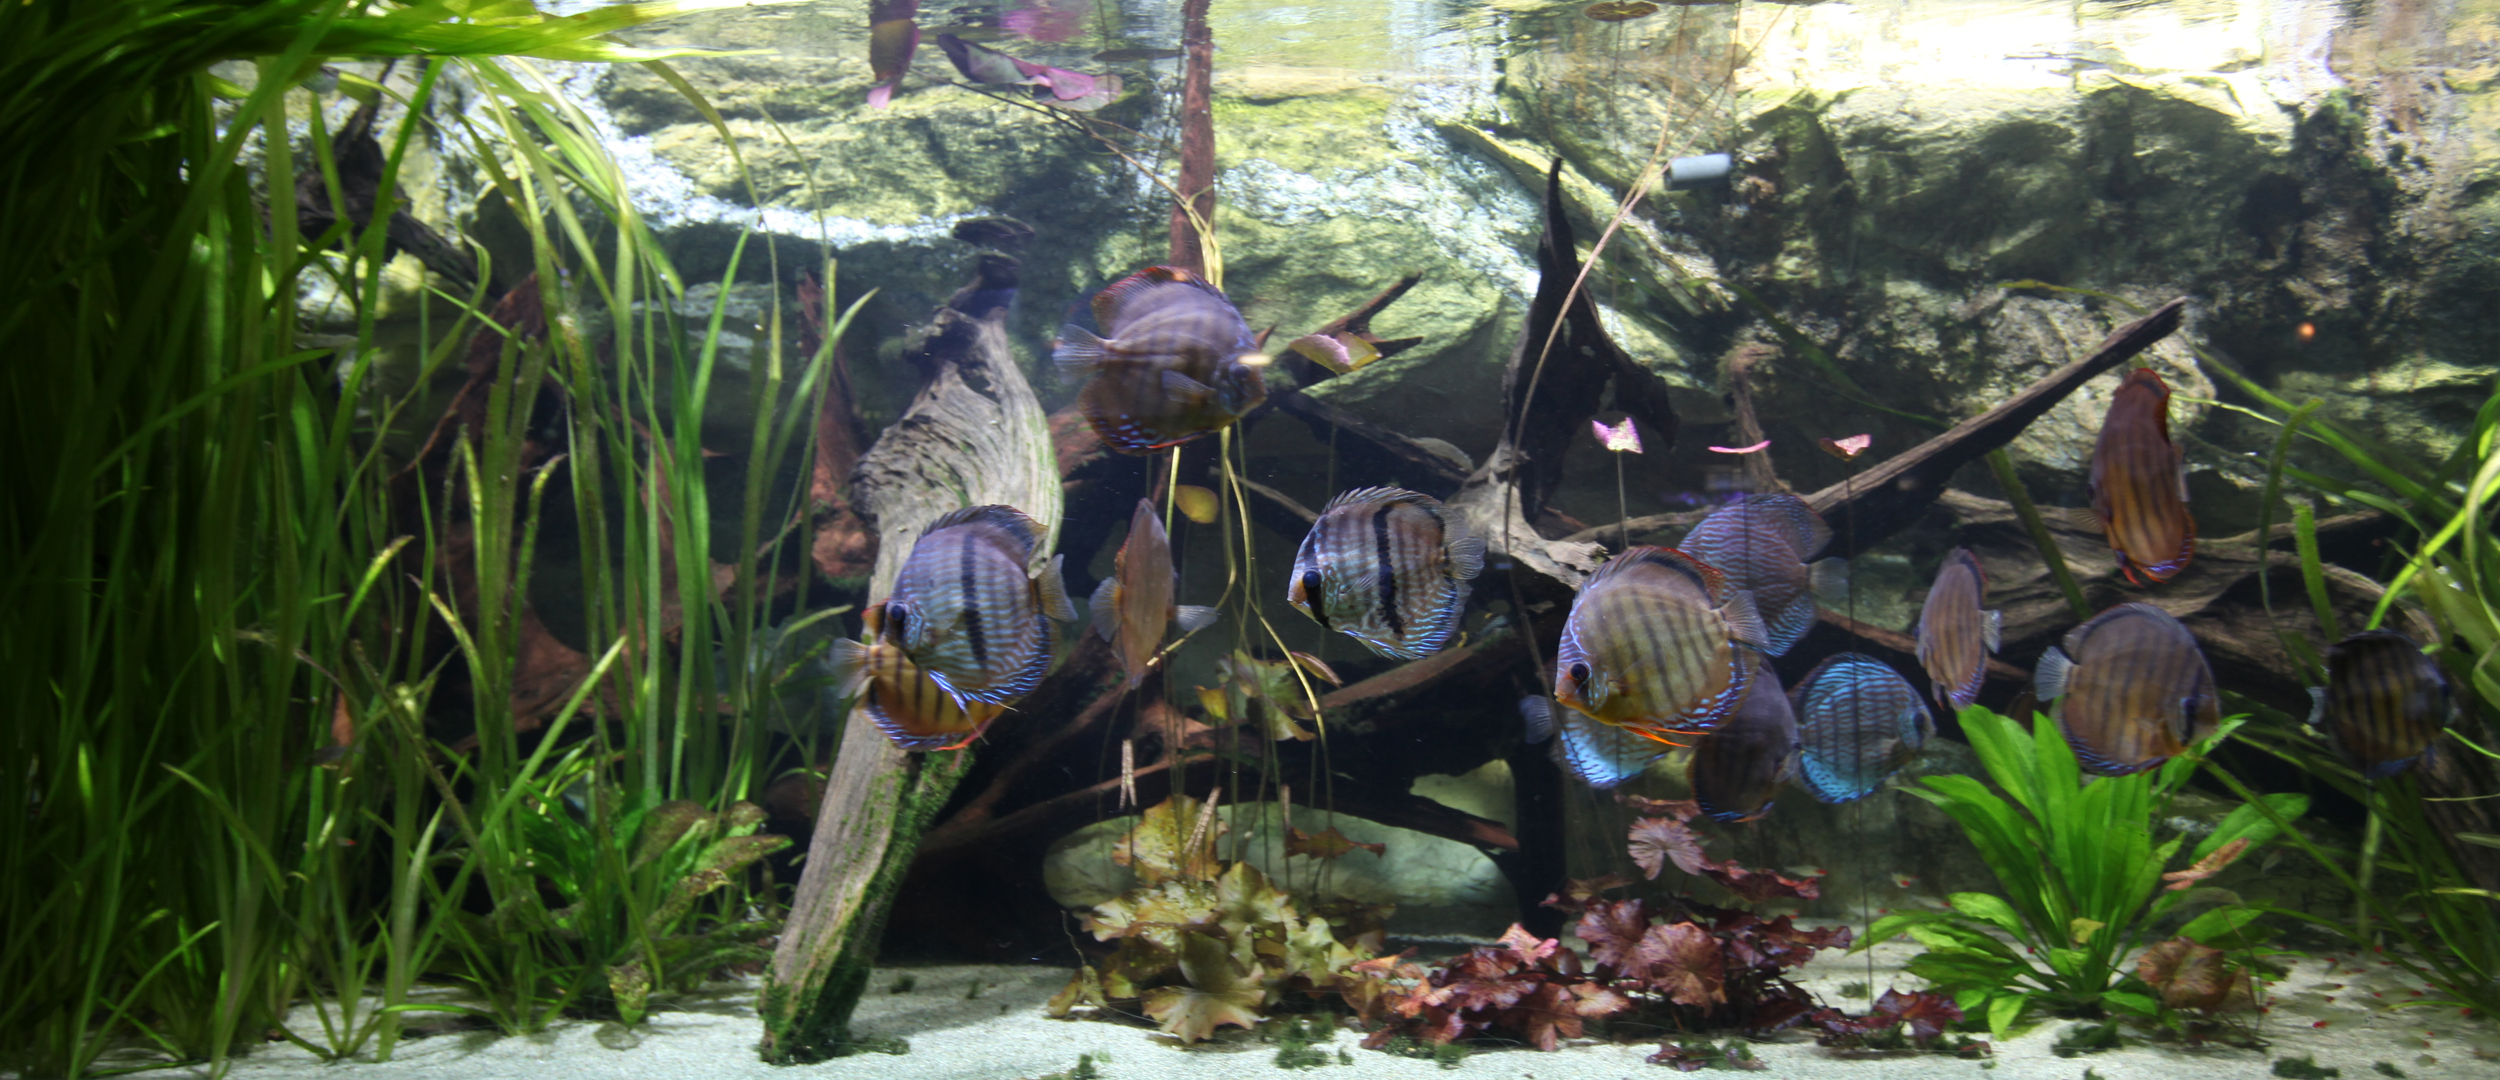 File:Tropical aquarium Palais de la Porte Doree.jpg - Wikimedia ...